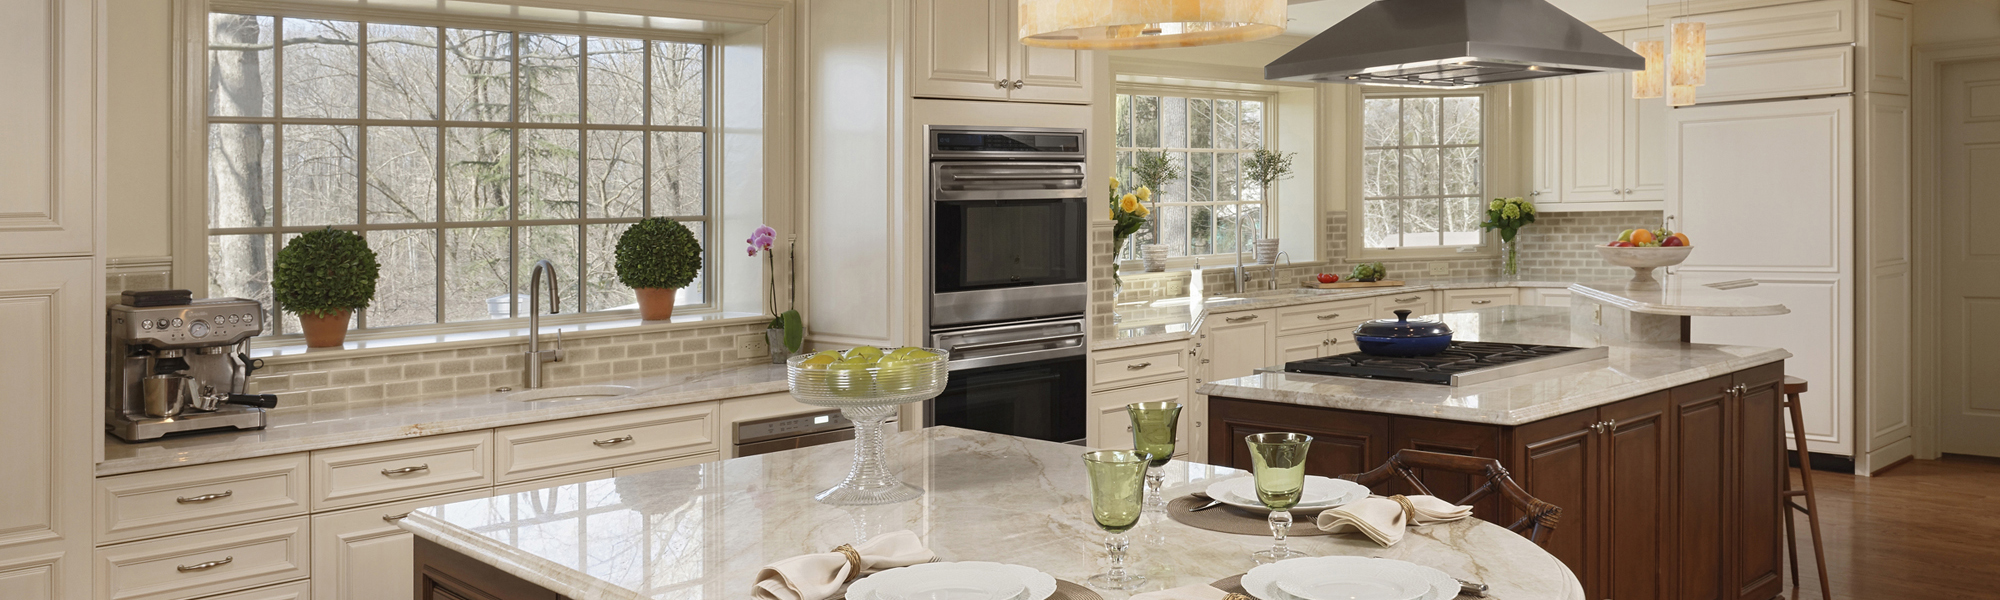 Kitchen designers in maryland kitchen design bethesda md remodeling renovation designers four - Kitchen designers in maryland ...